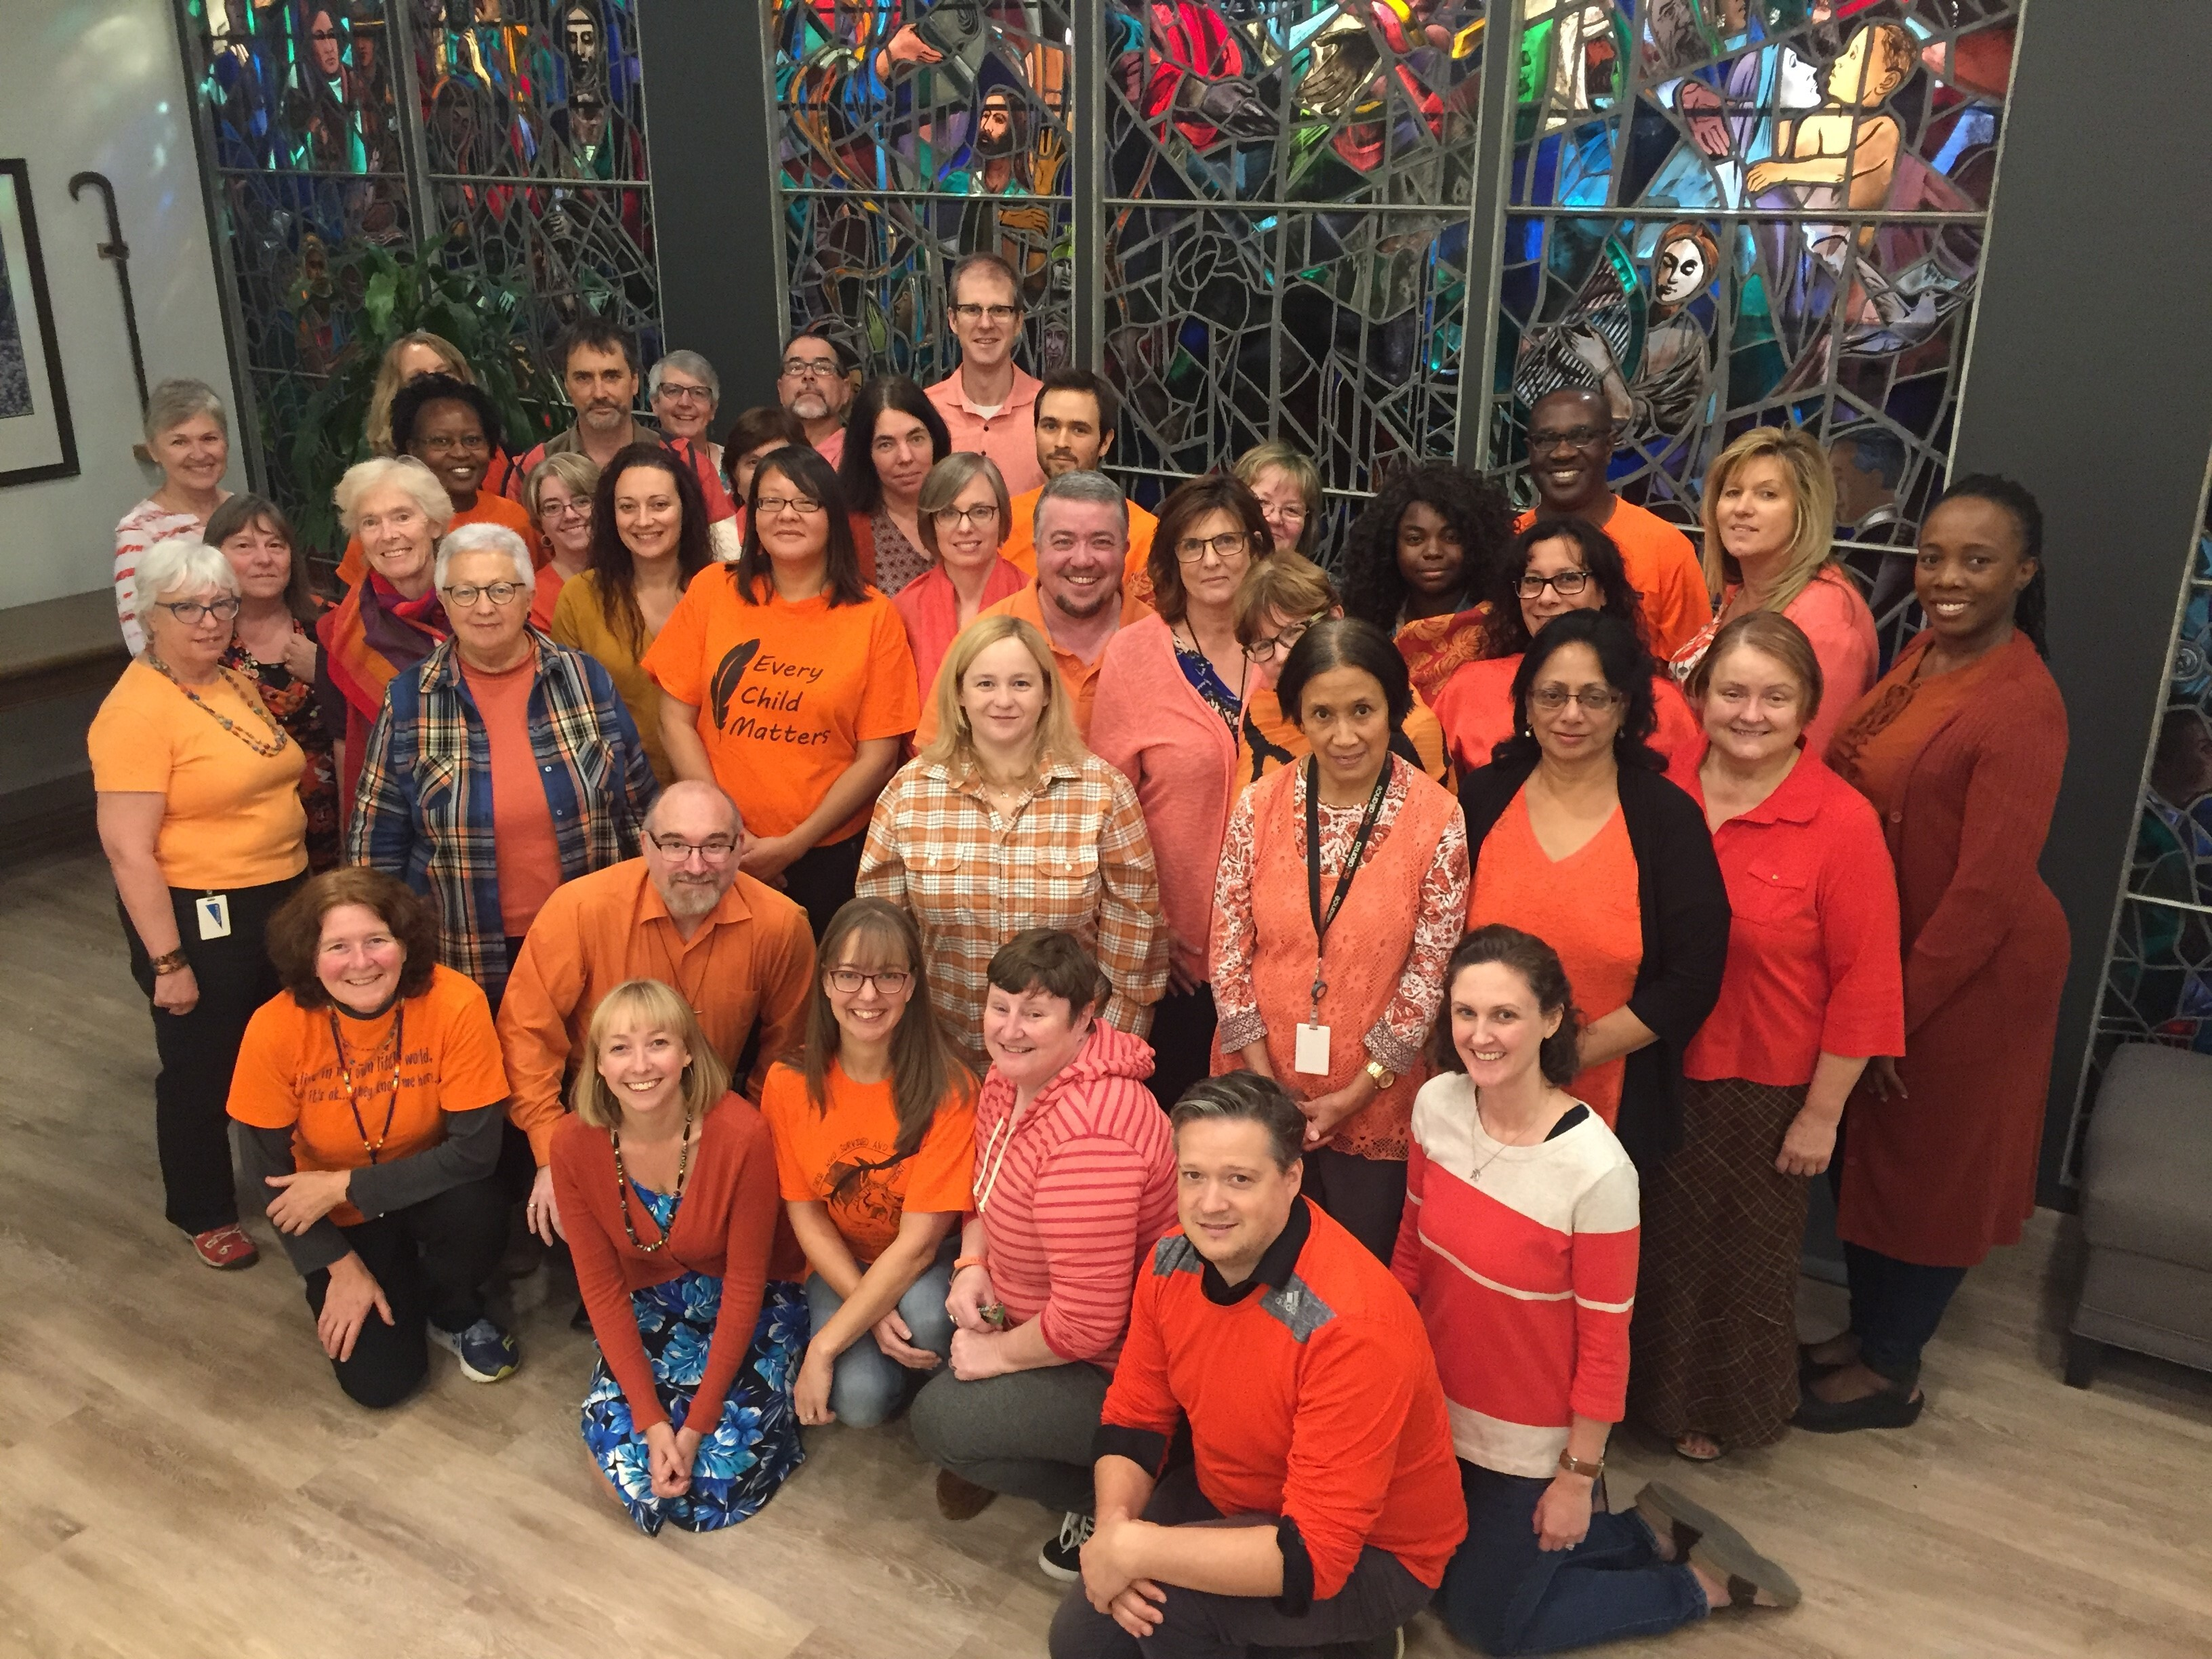 A photo from several years ago of General Council Office staff wearing orange shirts.